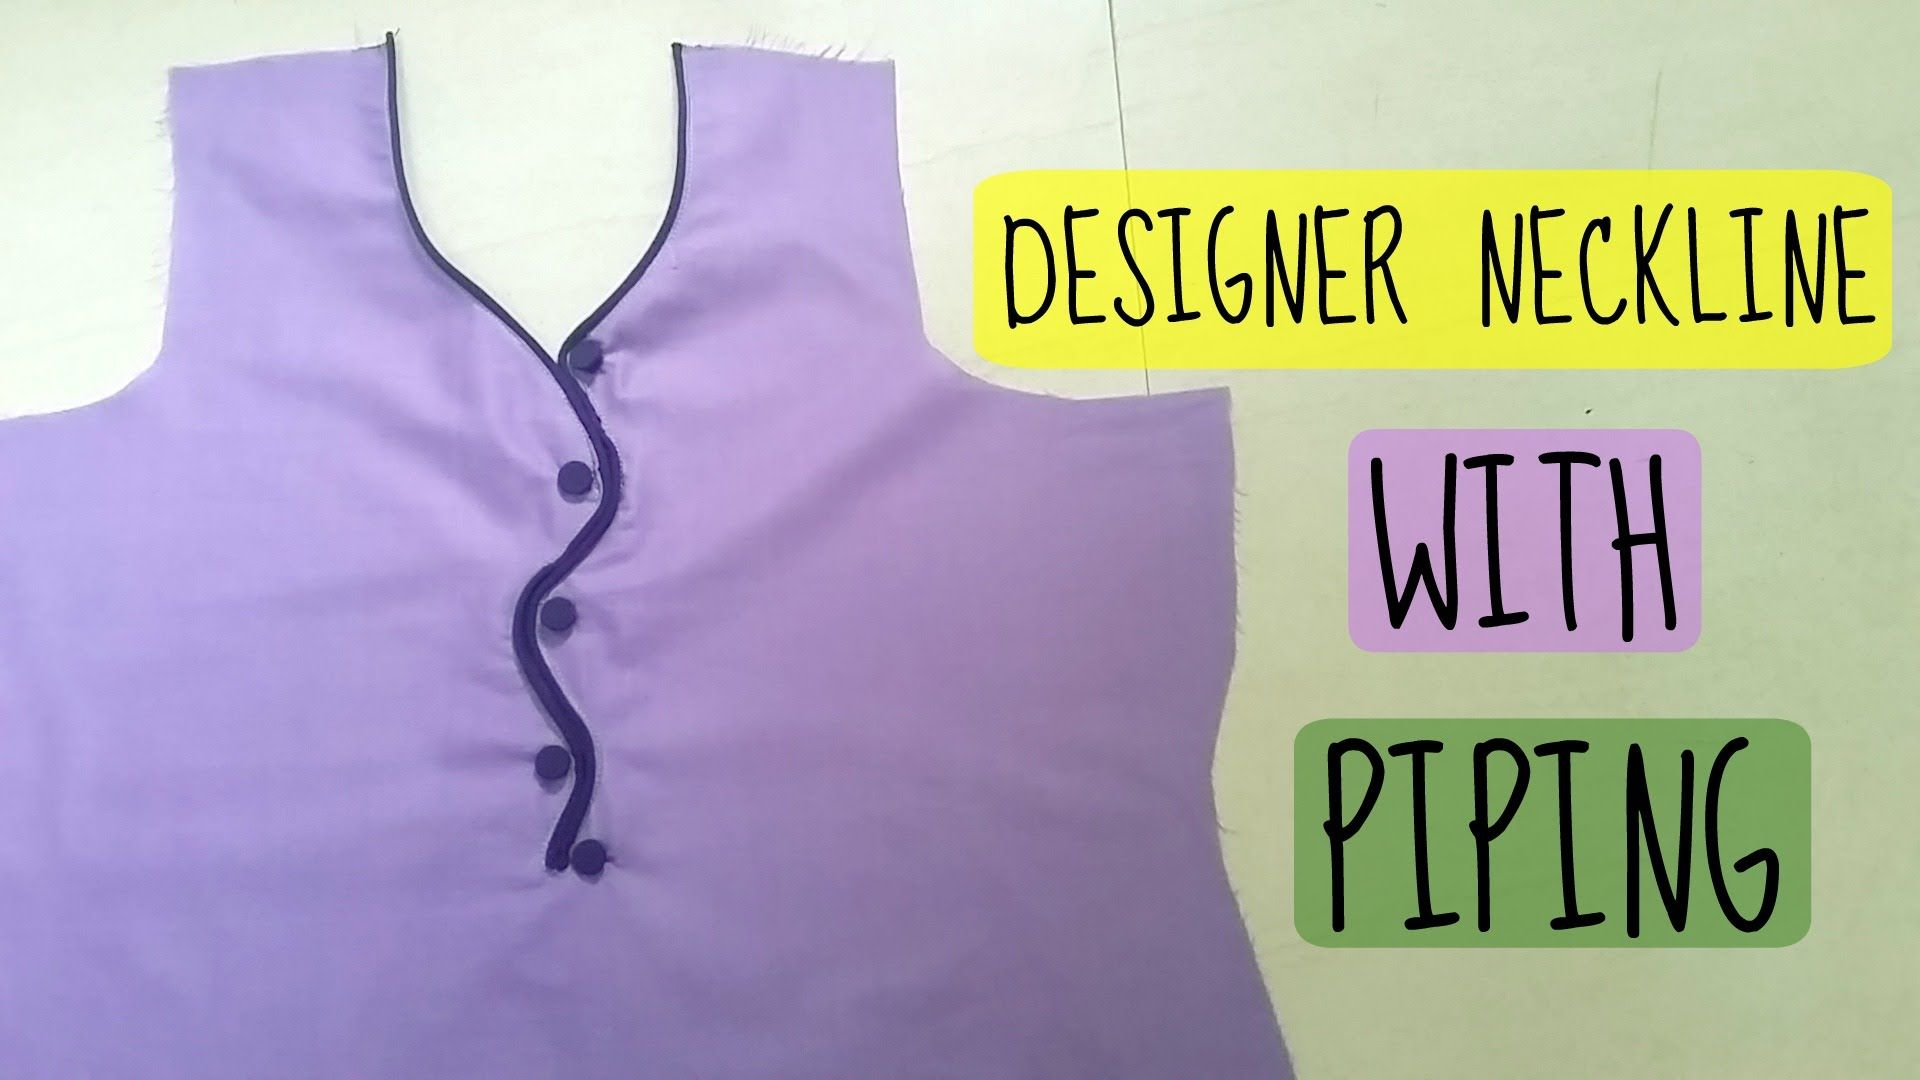 Designer neckline with piping and buttons | Anjalee sharma